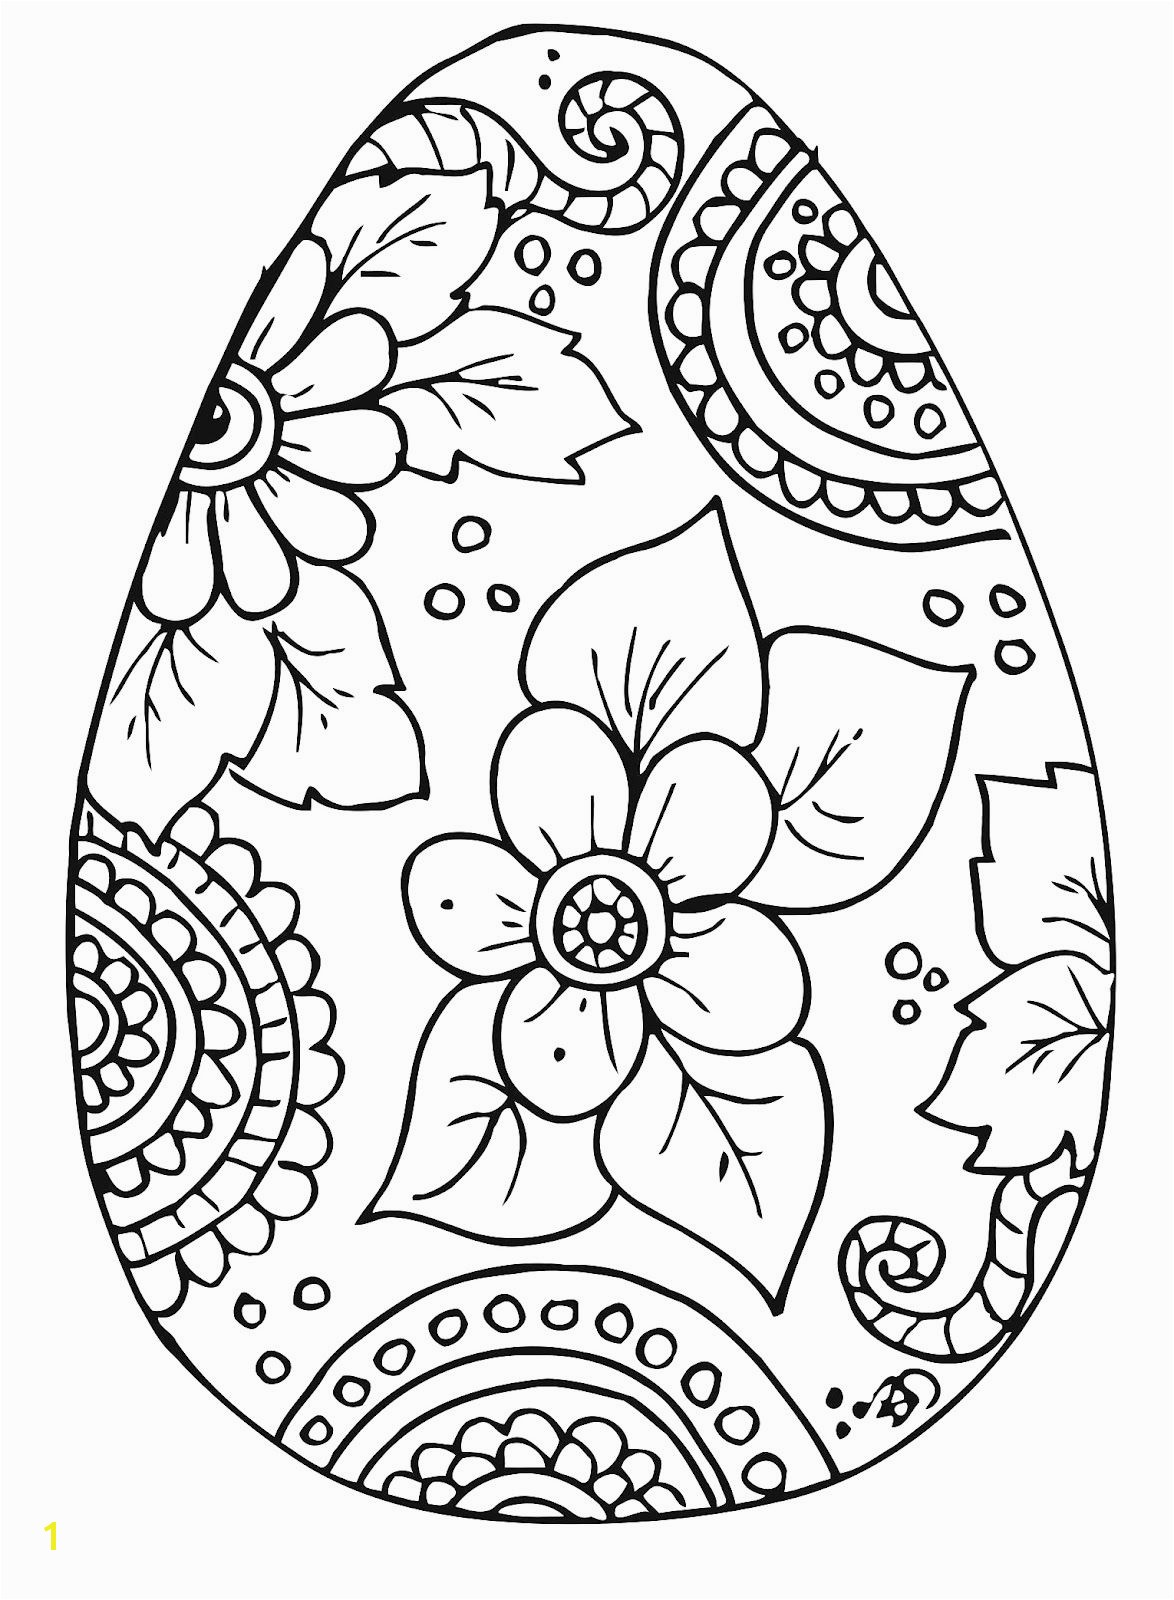 Free Printable Easter Basket Coloring Pages 10 Cool Free Printable Easter Coloring Pages for Kids who Ve Moved